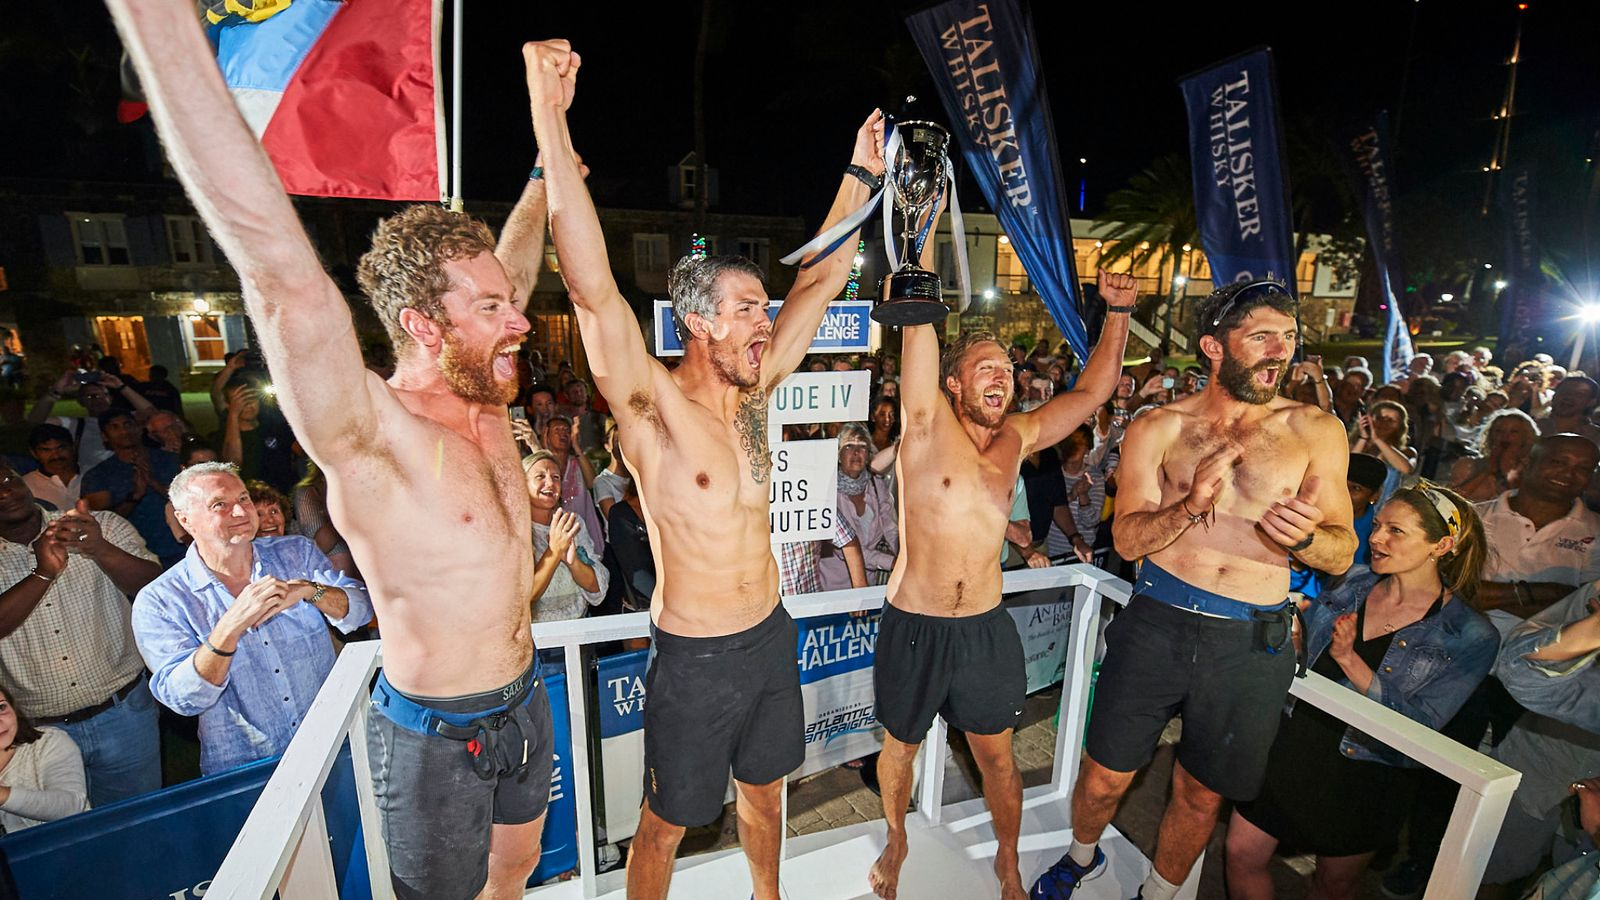 British Friends Battle Giant Waves To Win 3,000-mile Atlantic Rowing Race photo